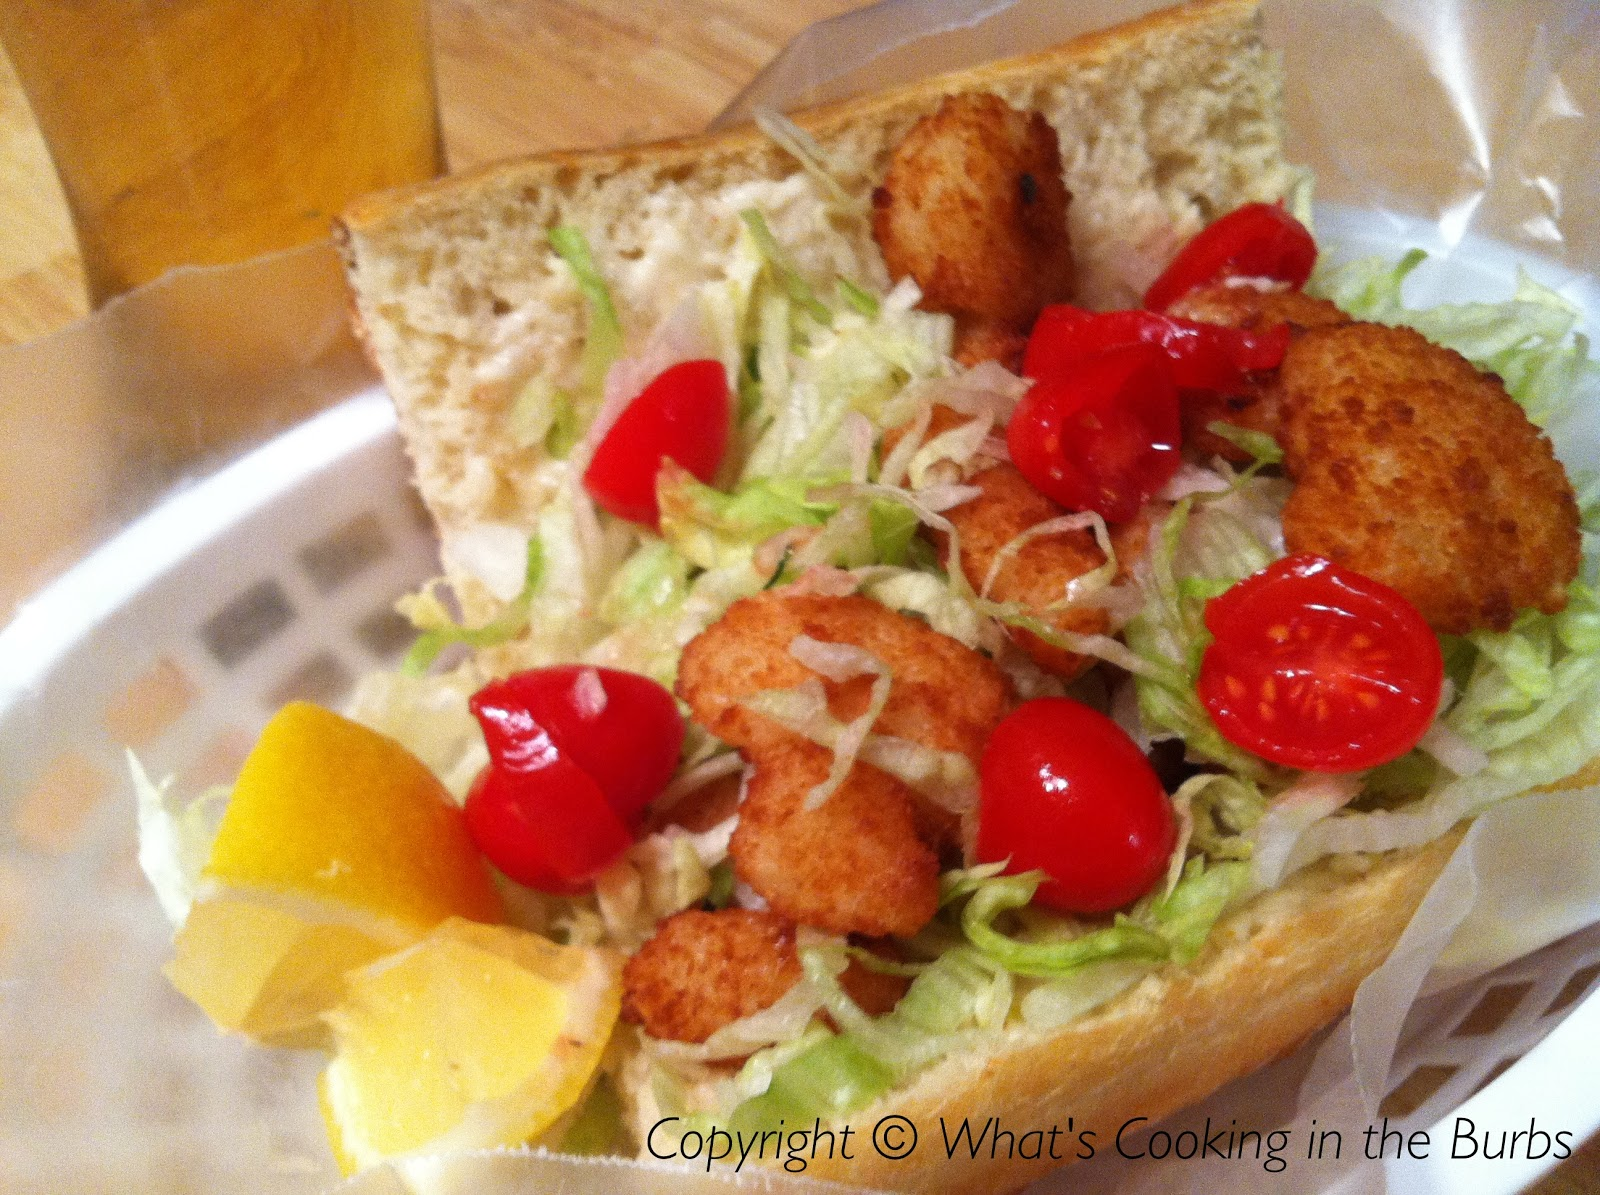 What's Cooking in the Burbs: Shrimp Po Boy Sandwich